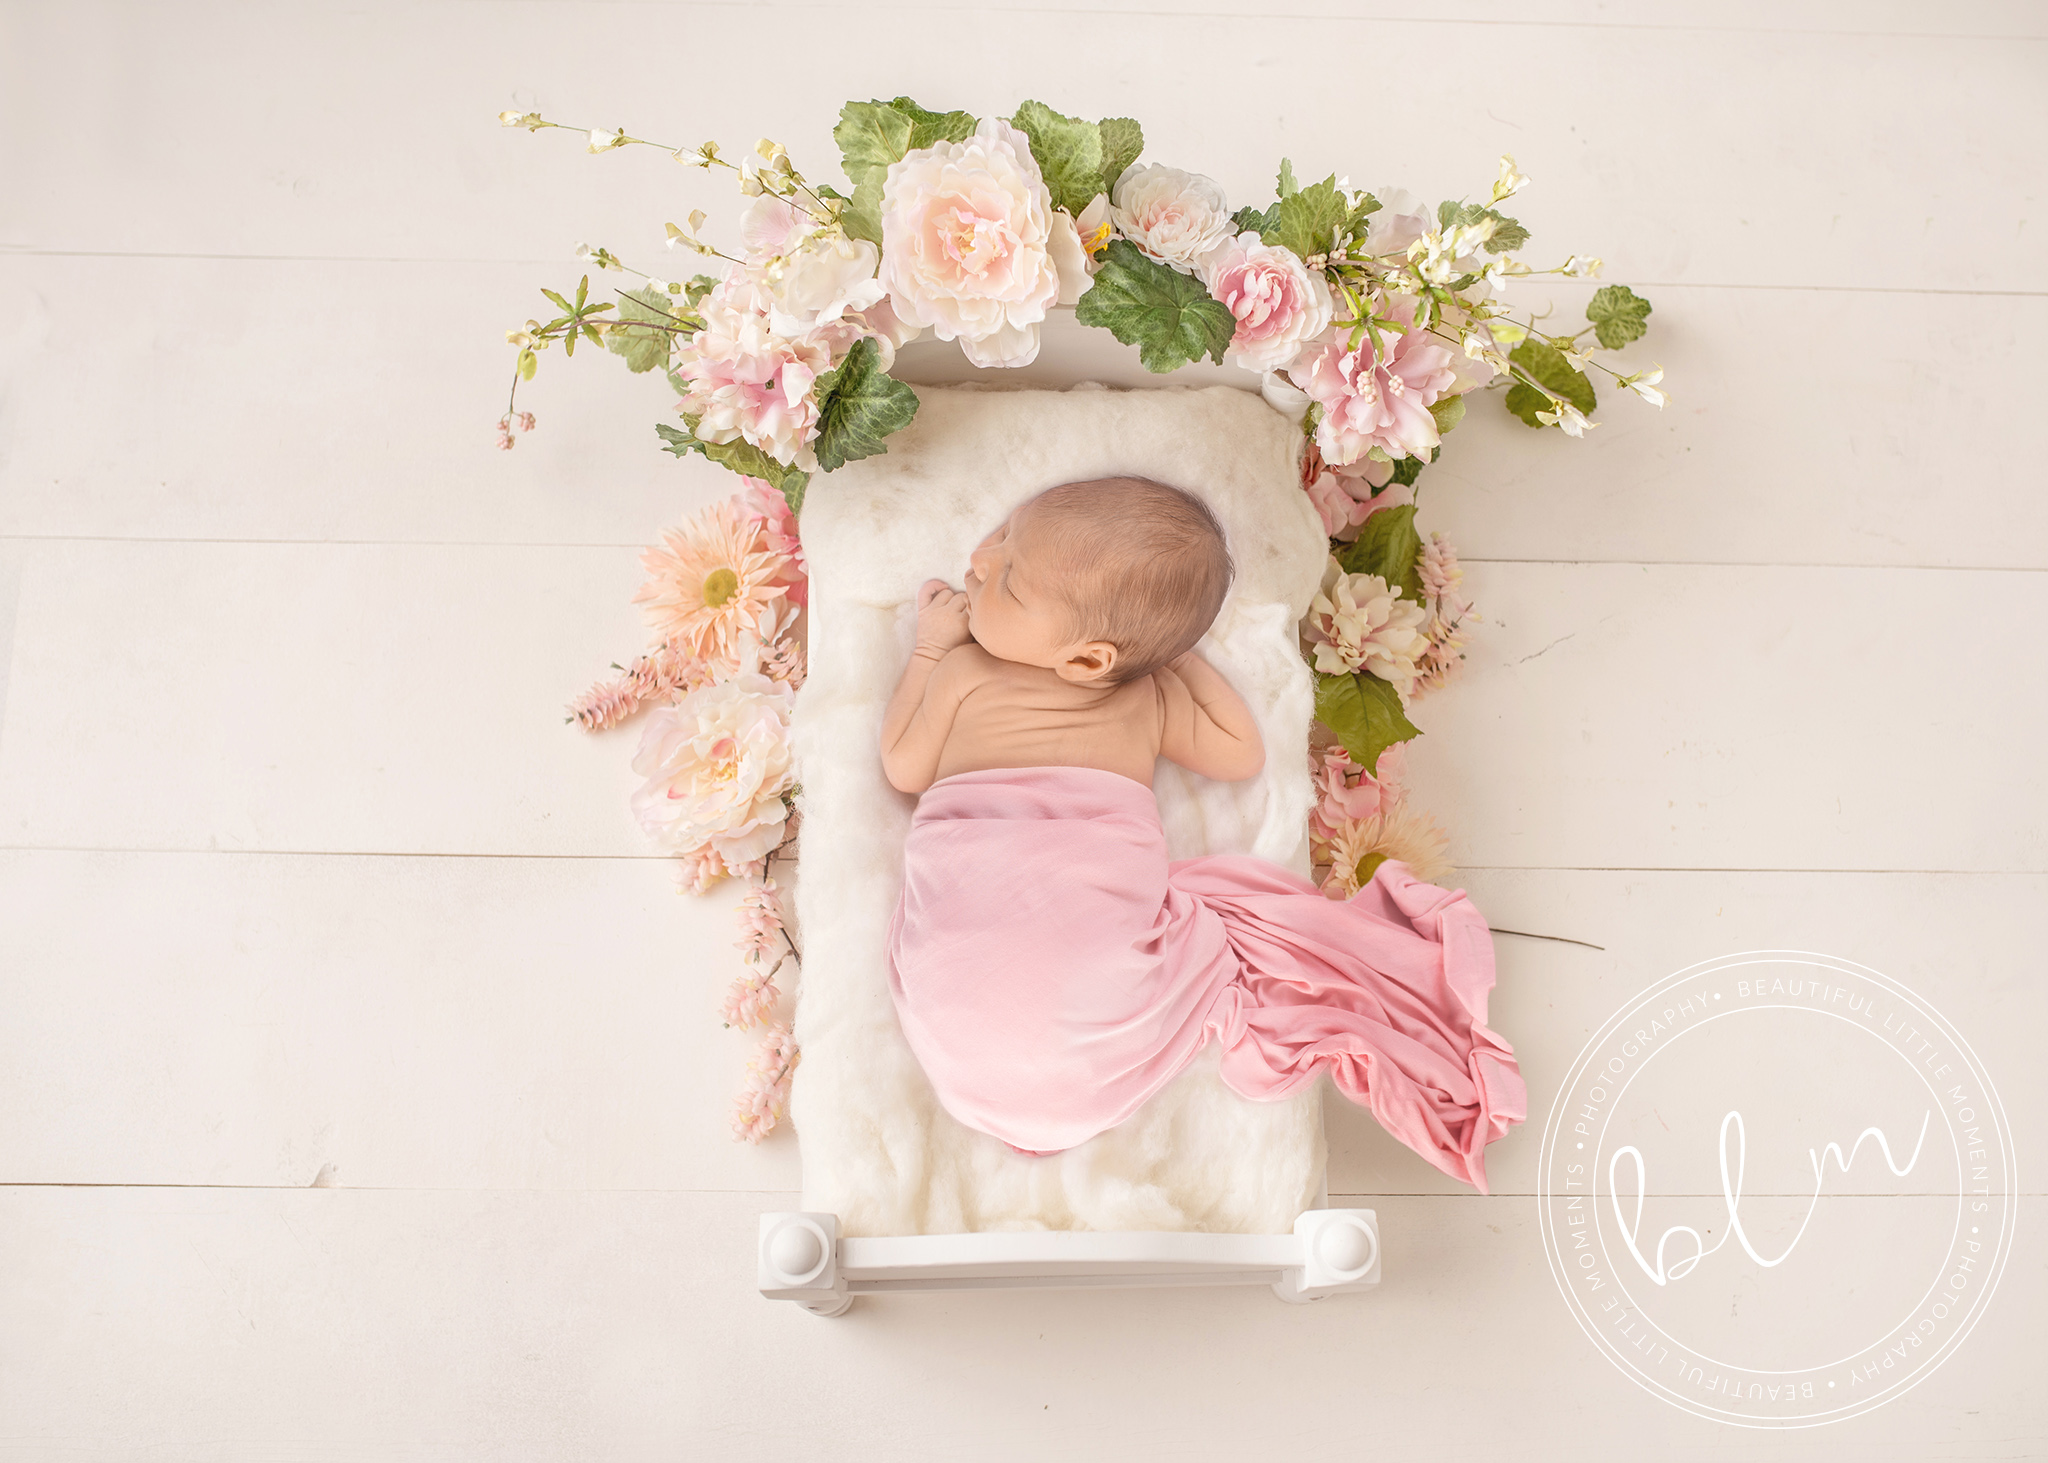 posed-newborn-studio-session-flowers-bed-baby-photography-epsom-surrey